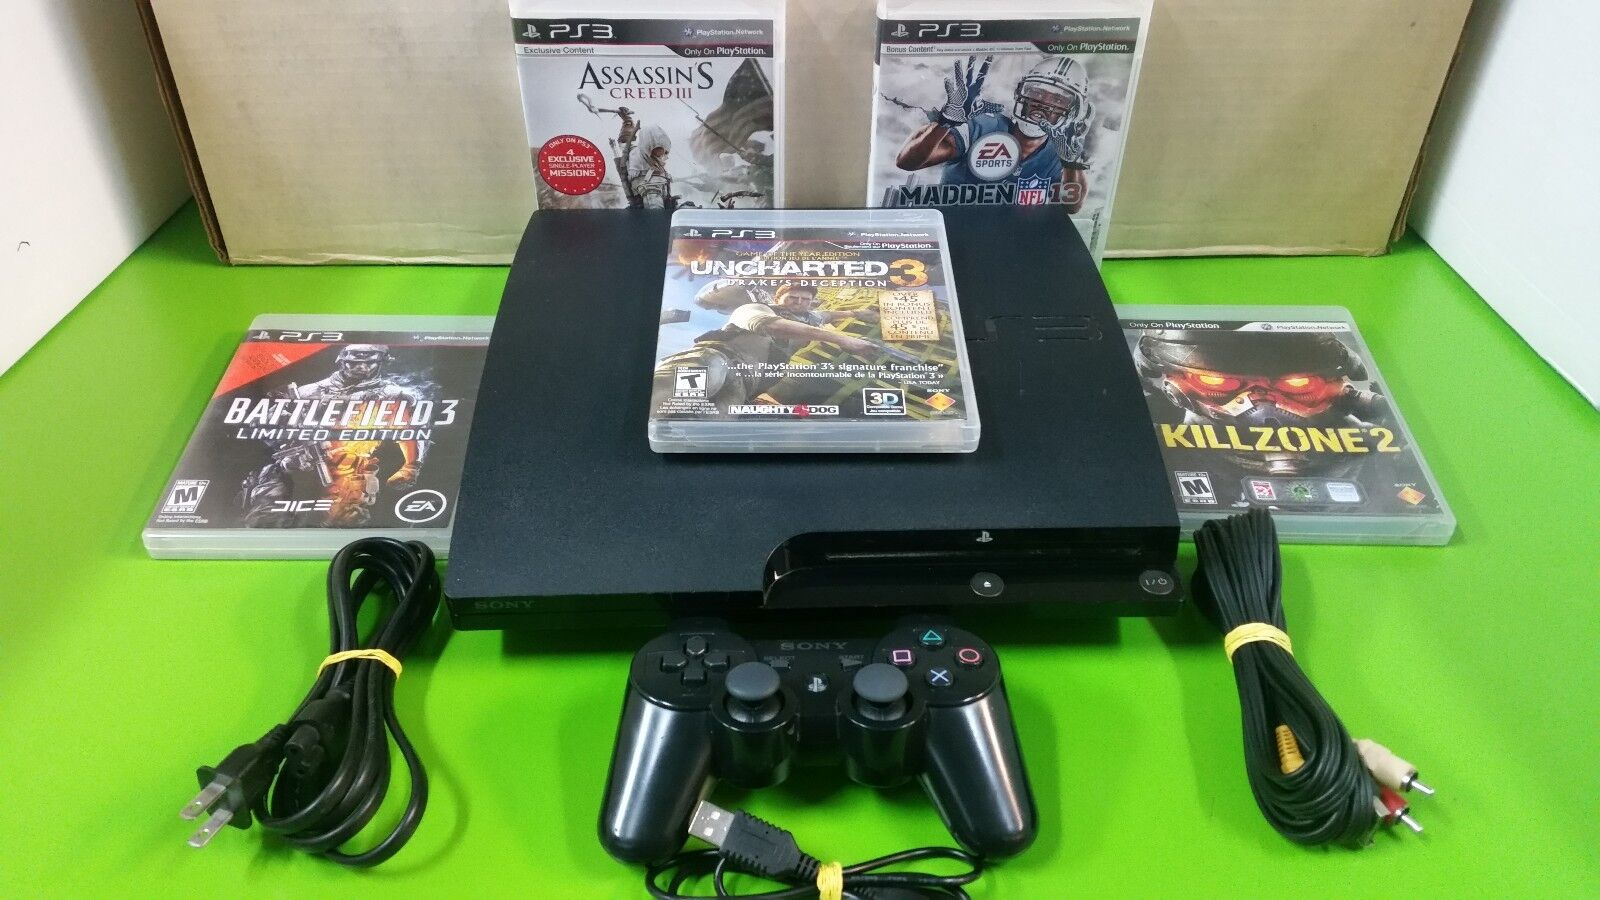 Playstation 3 - Playstation 3 PS3 120, 160, 250, 320, 500gb with games